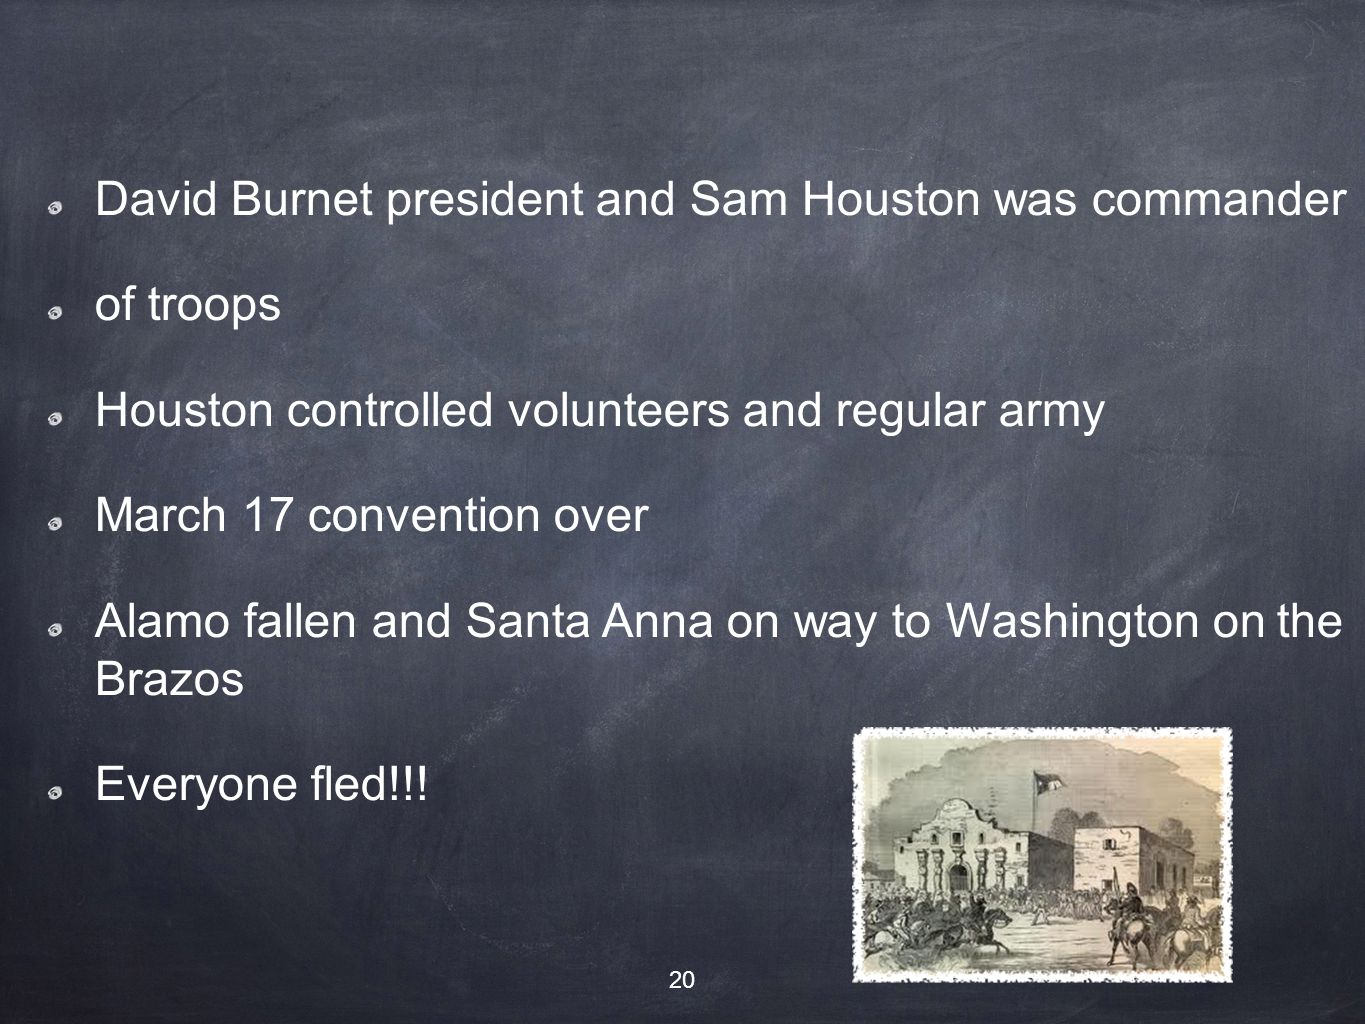 20 David Burnet president and Sam Houston was commander of troops Houston controlled volunteers and regular army March 17 convention over Alamo fallen